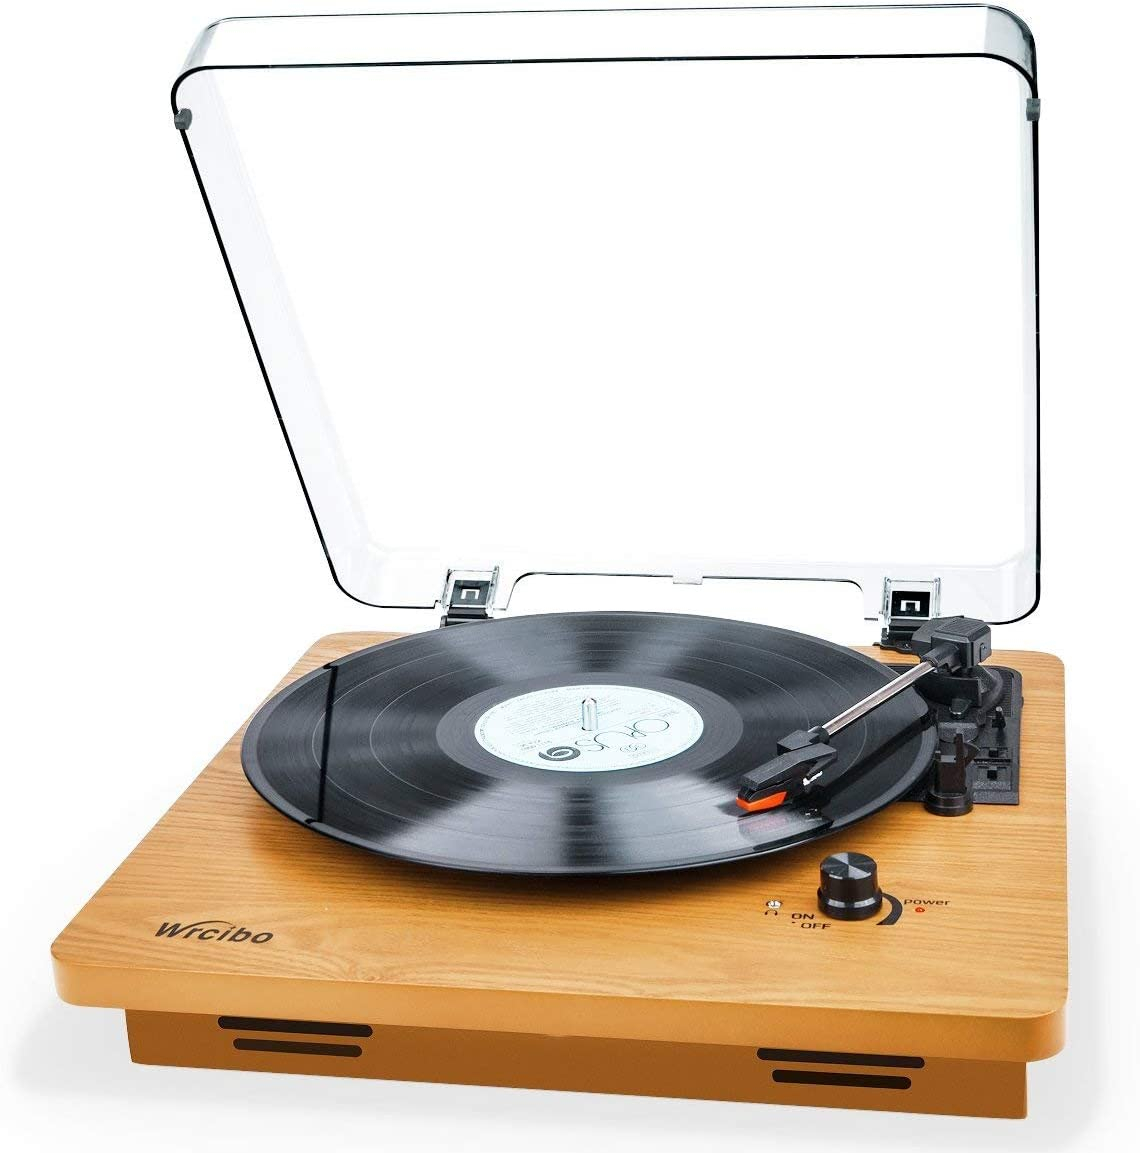 Wrcibo Record Player, Vintage Turntable 3-Speed